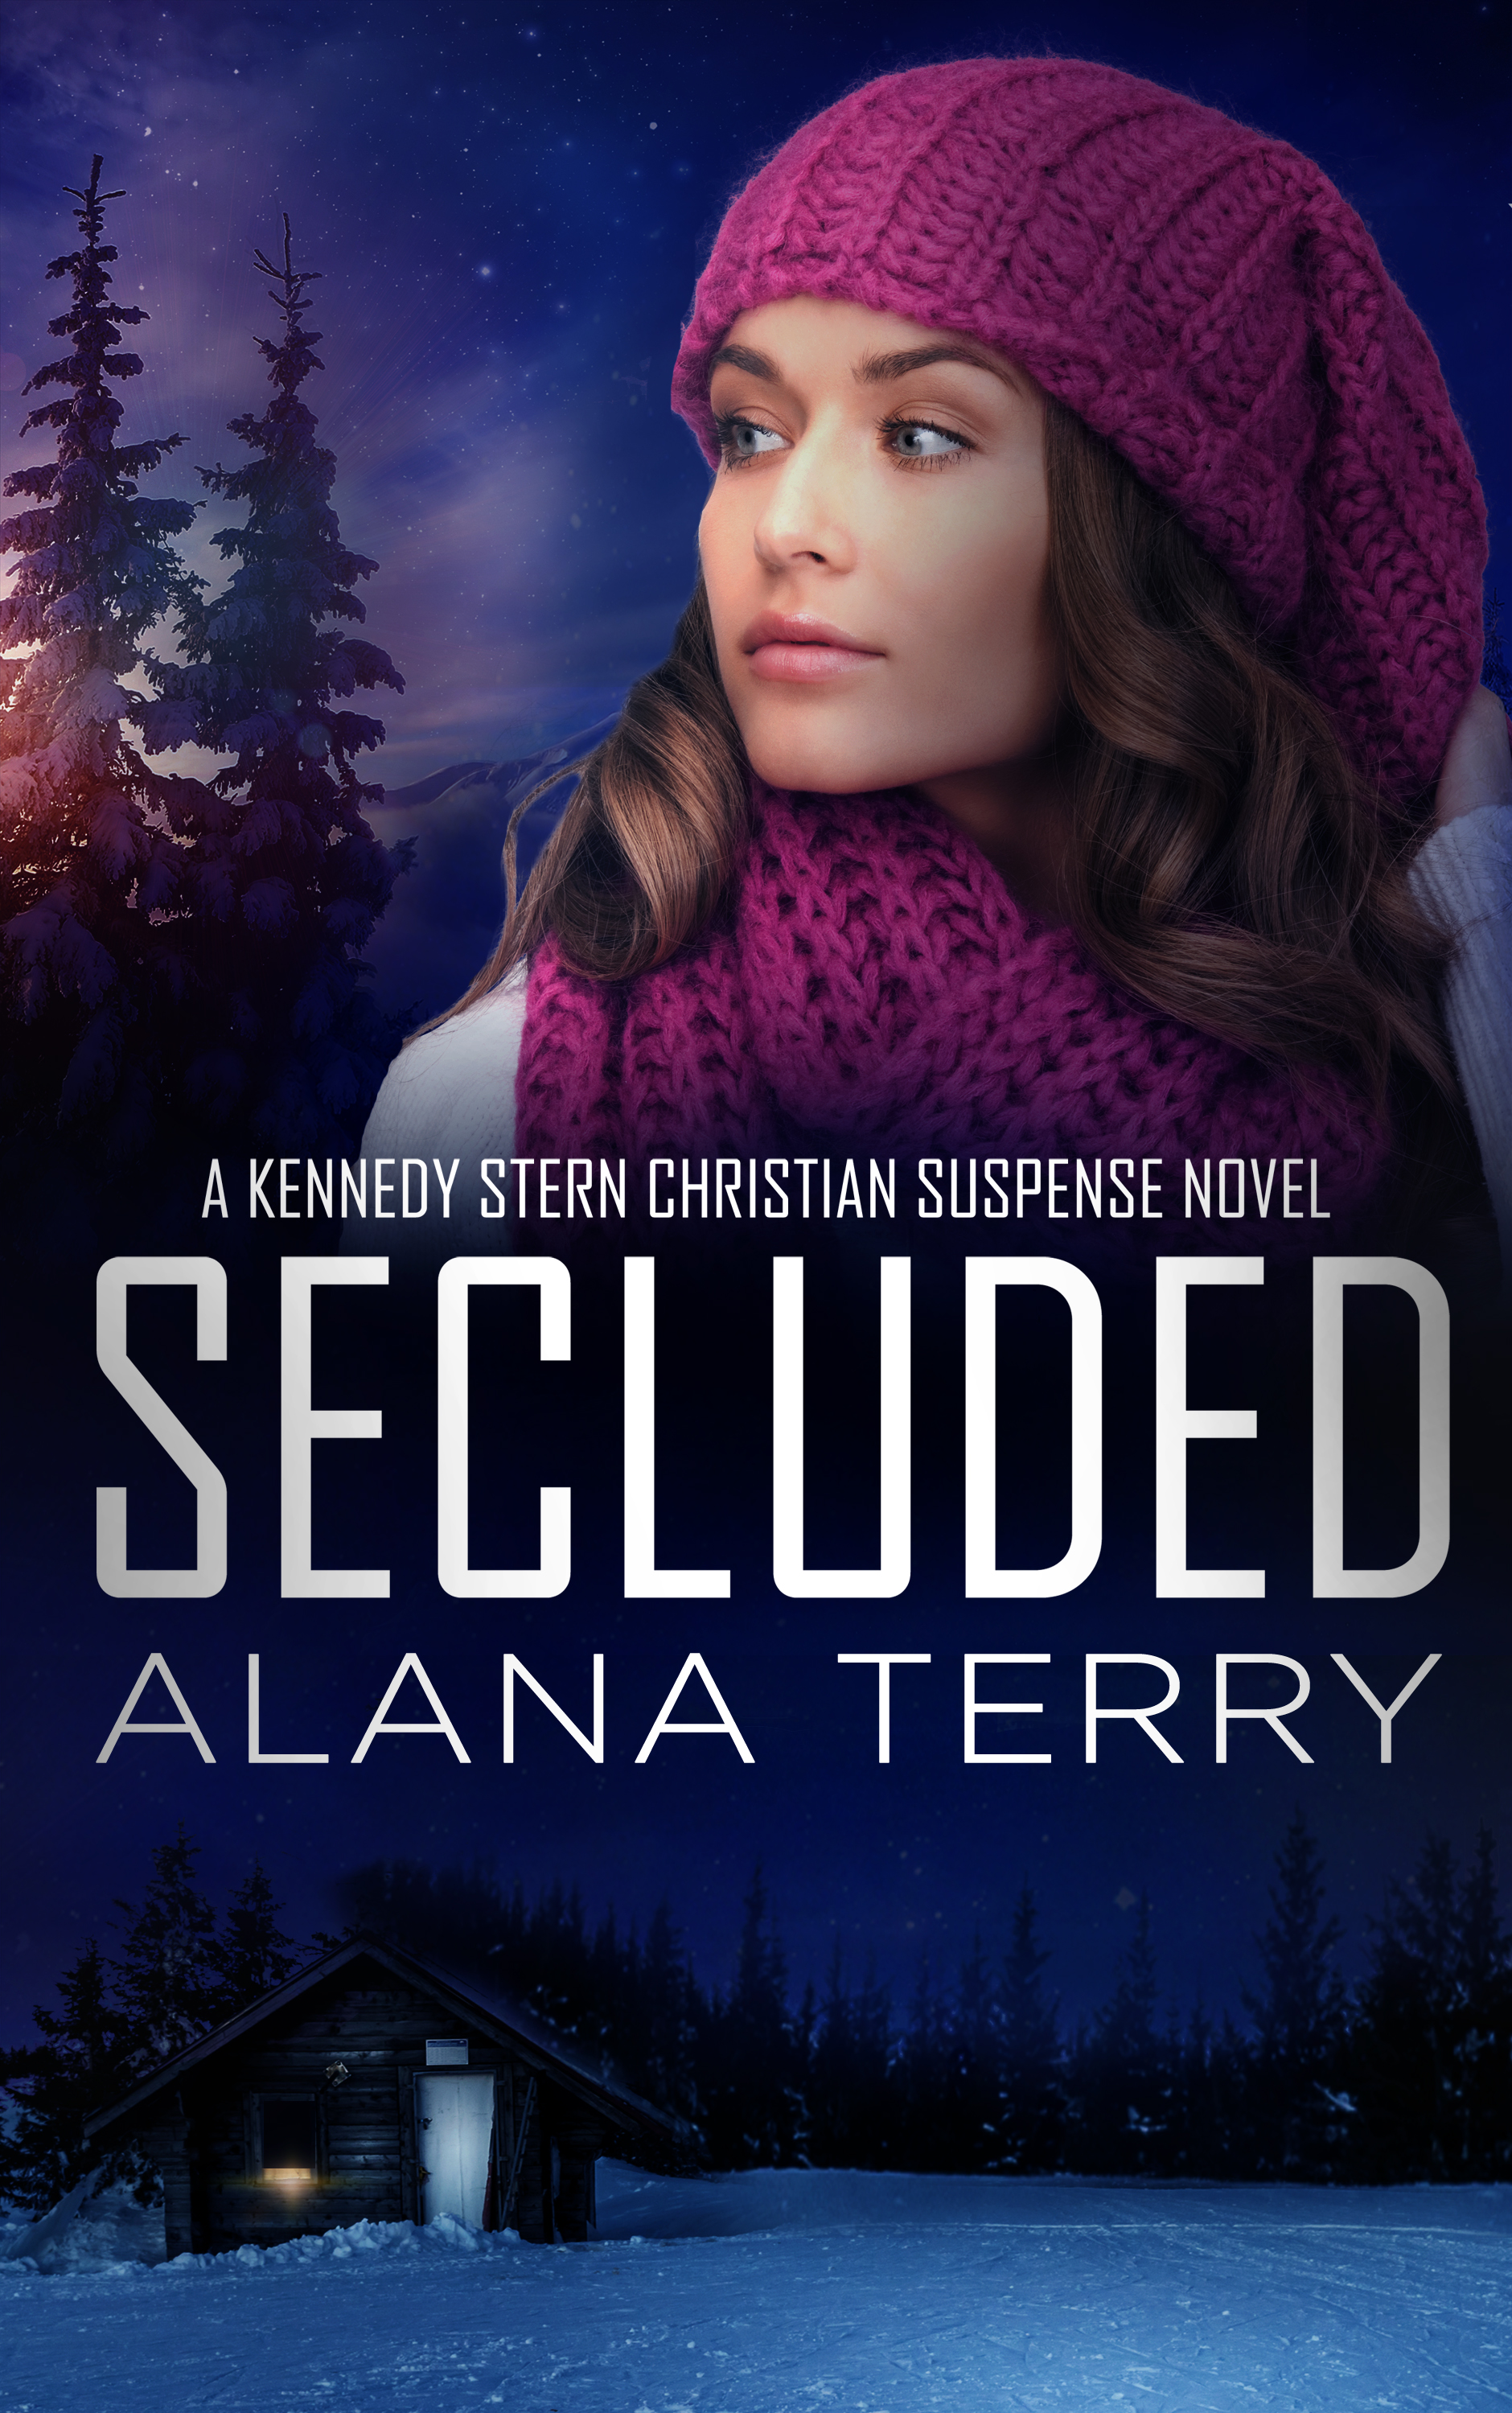 Secluded by Alana Terry